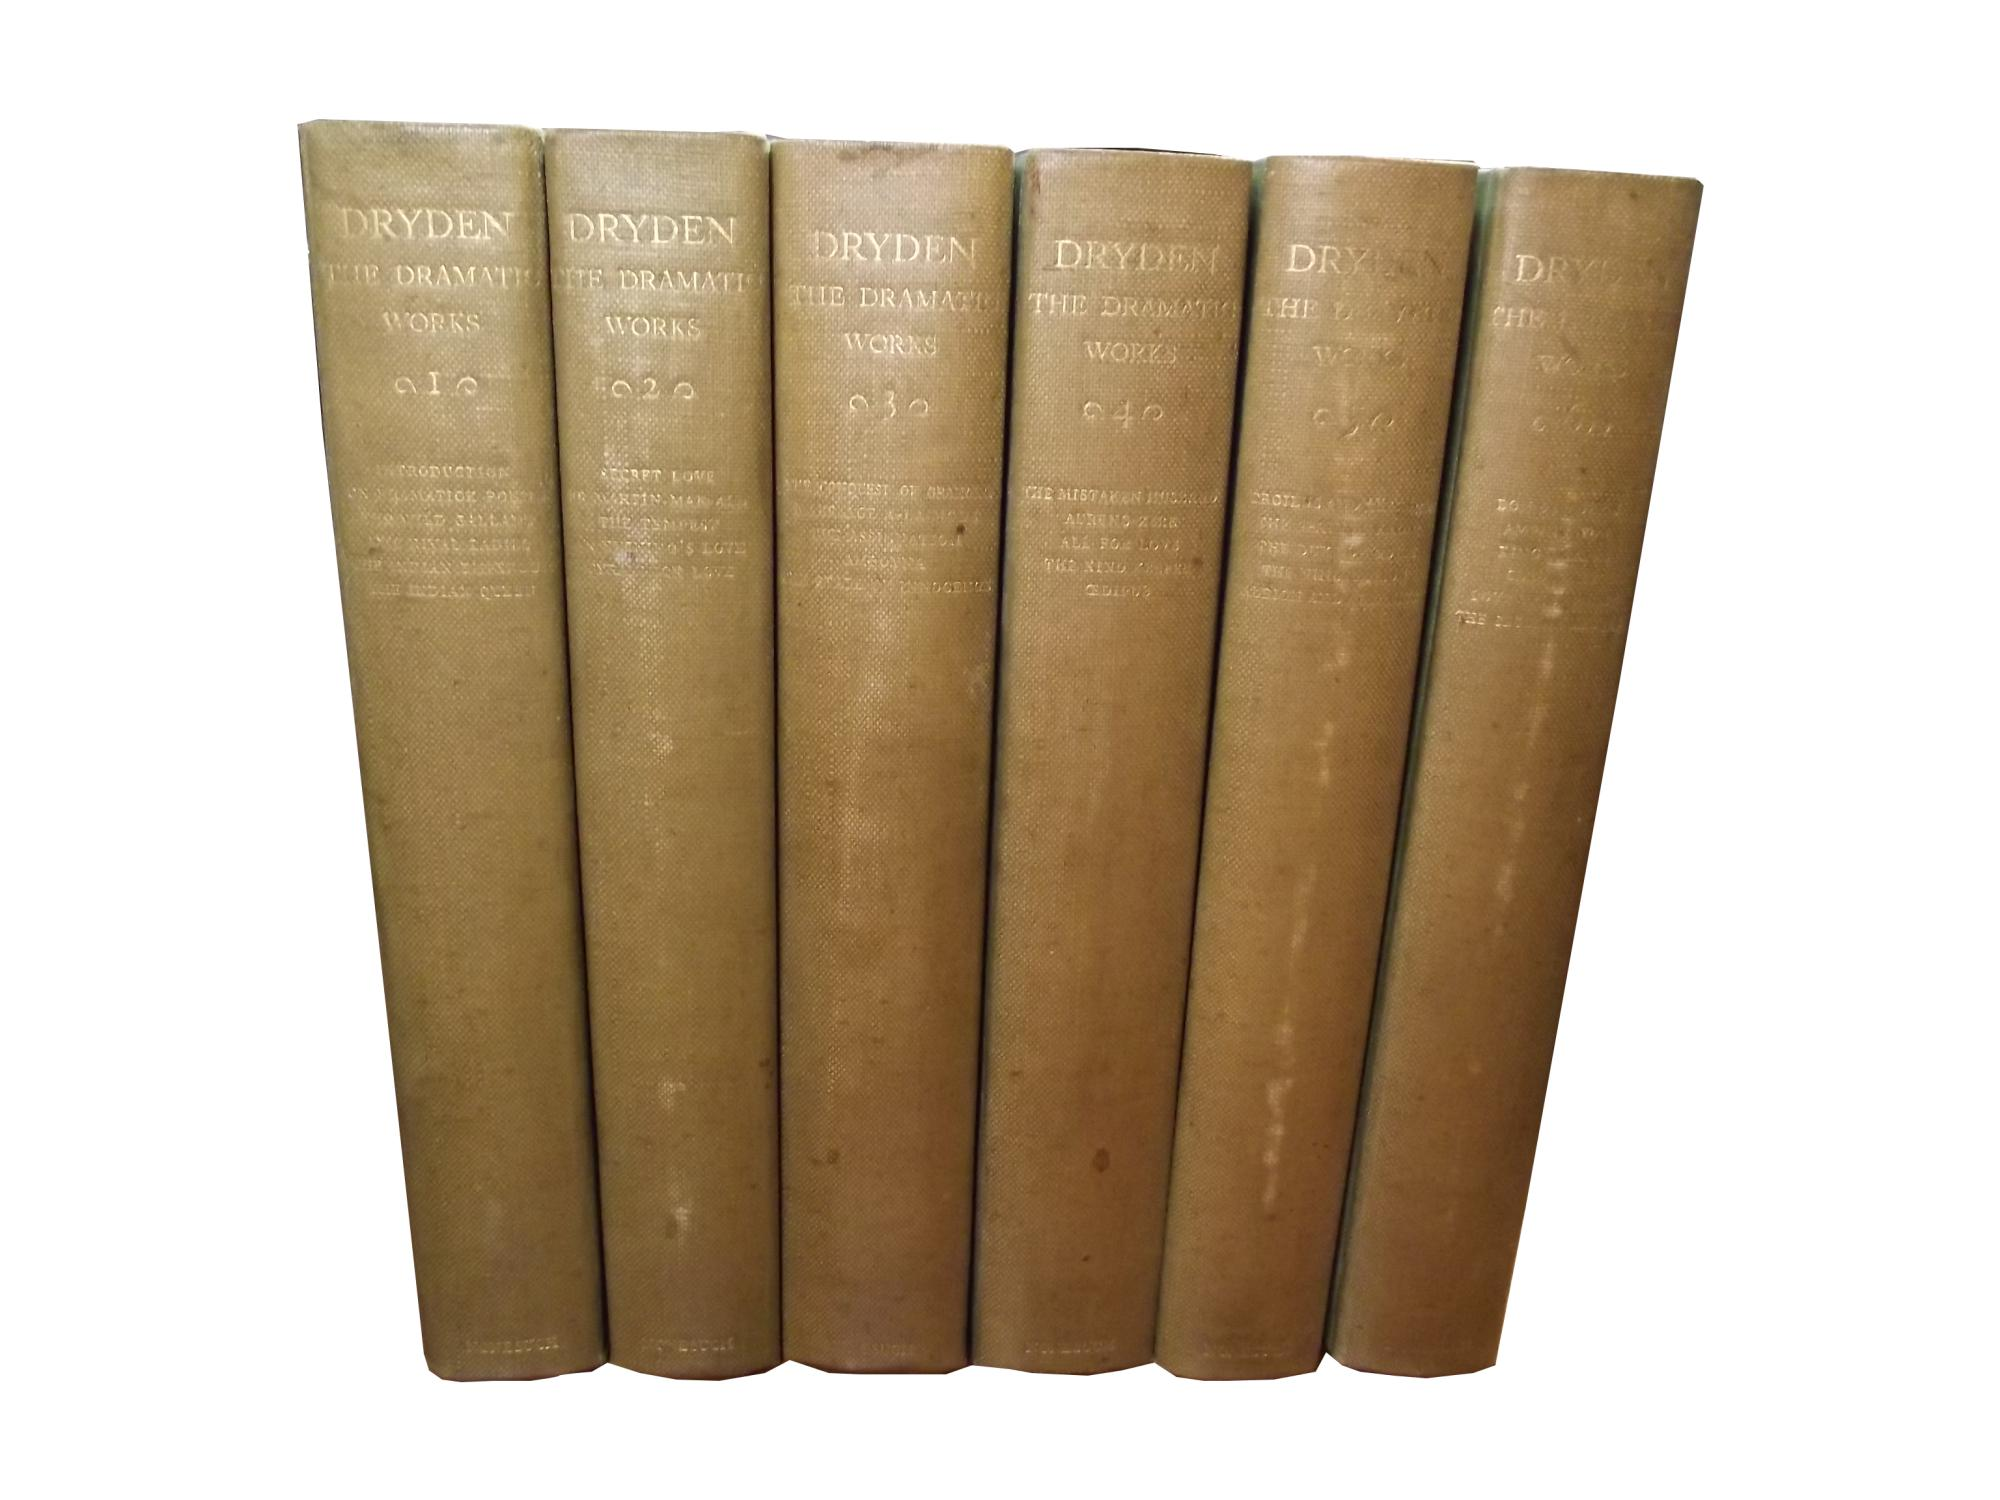 Dryden - The Dramatic Works Summers, Montague (Ed)